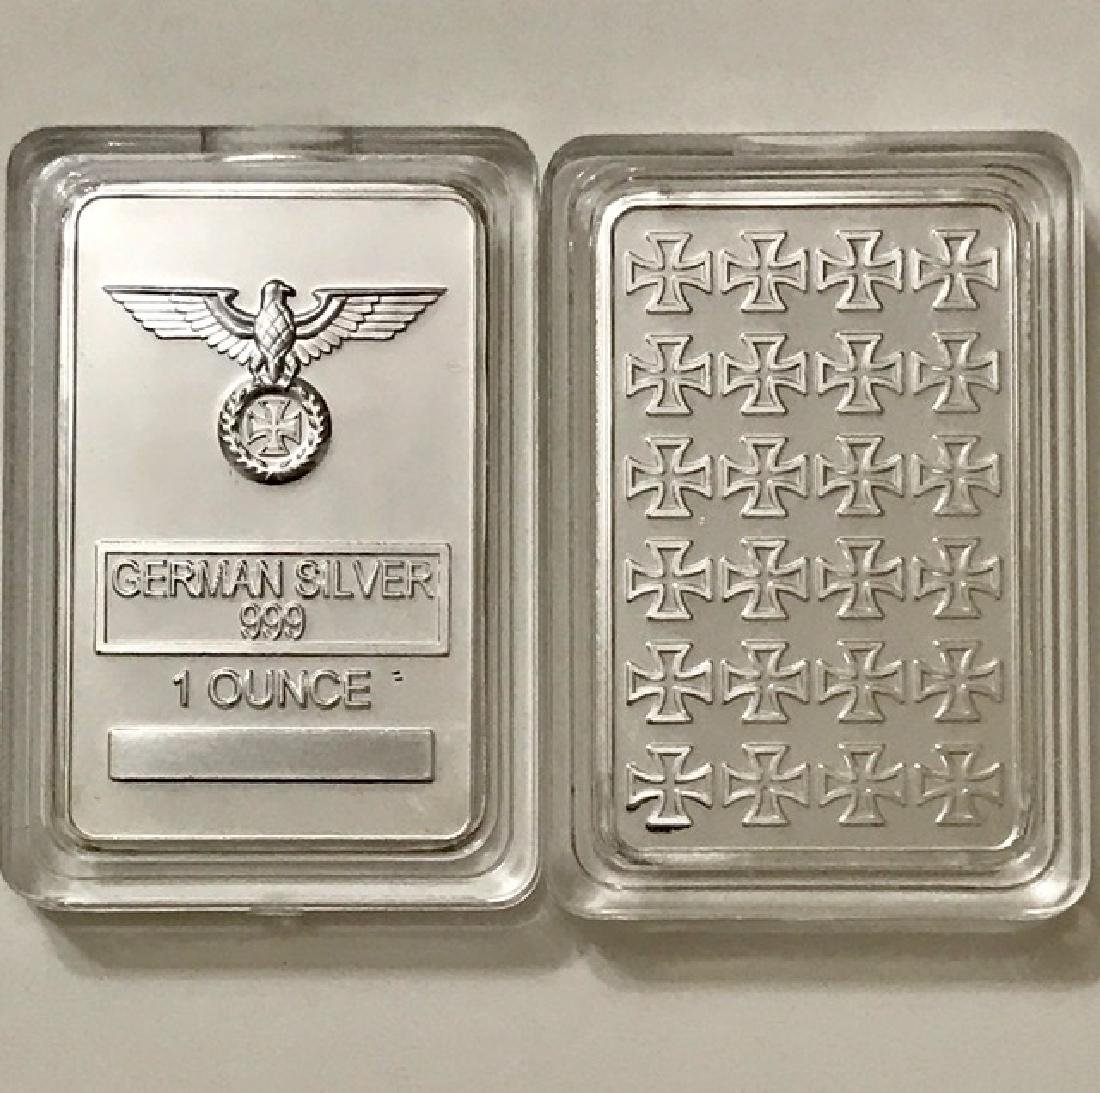 1oz .999 German Silver Iron Cross Bullion Bar